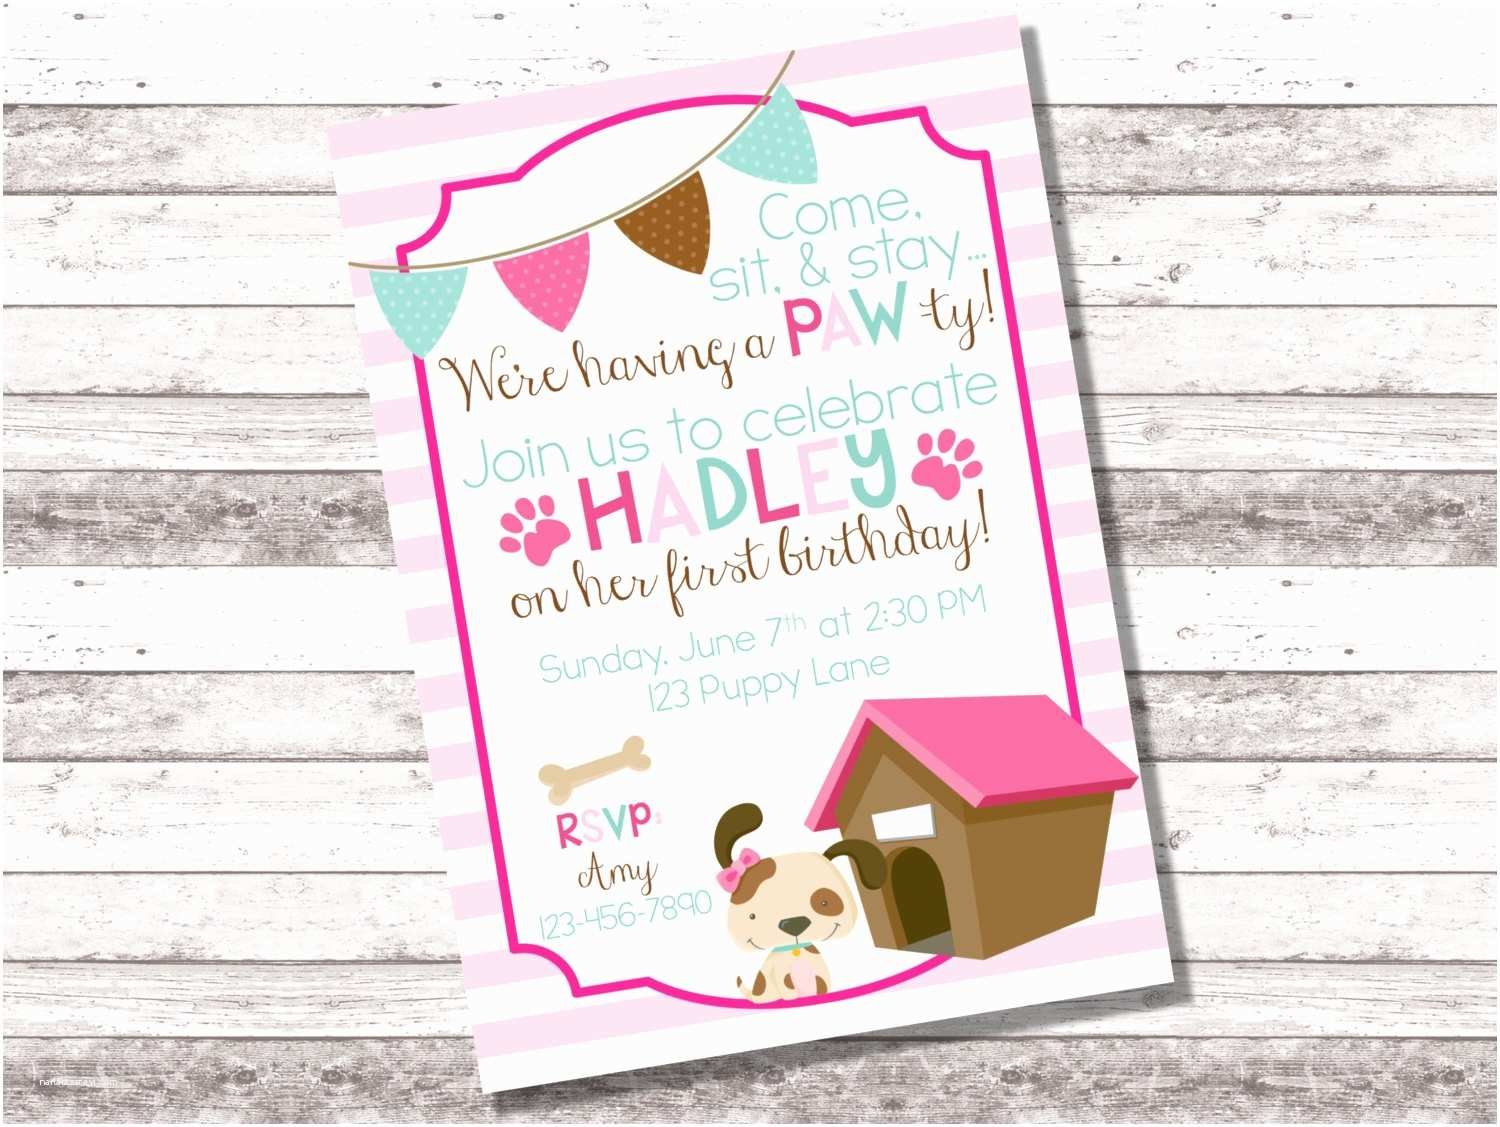 Puppy Party Invitations Puppy Birthday Party Invitations Mickey Mouse